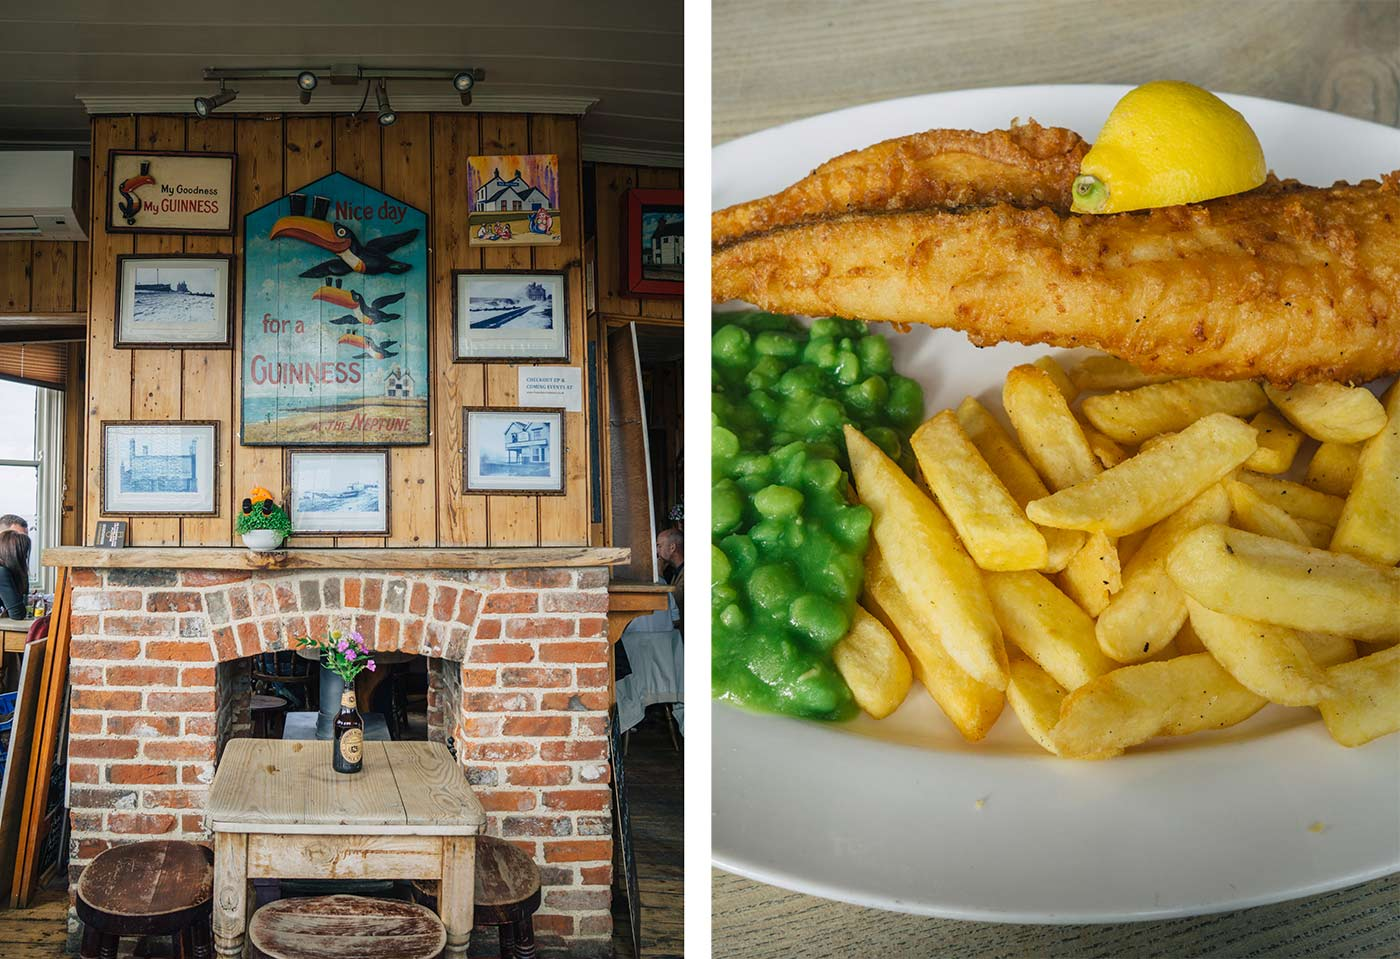 Old Neptune pub | Things to do in Whitstable - a day trip from London blog post